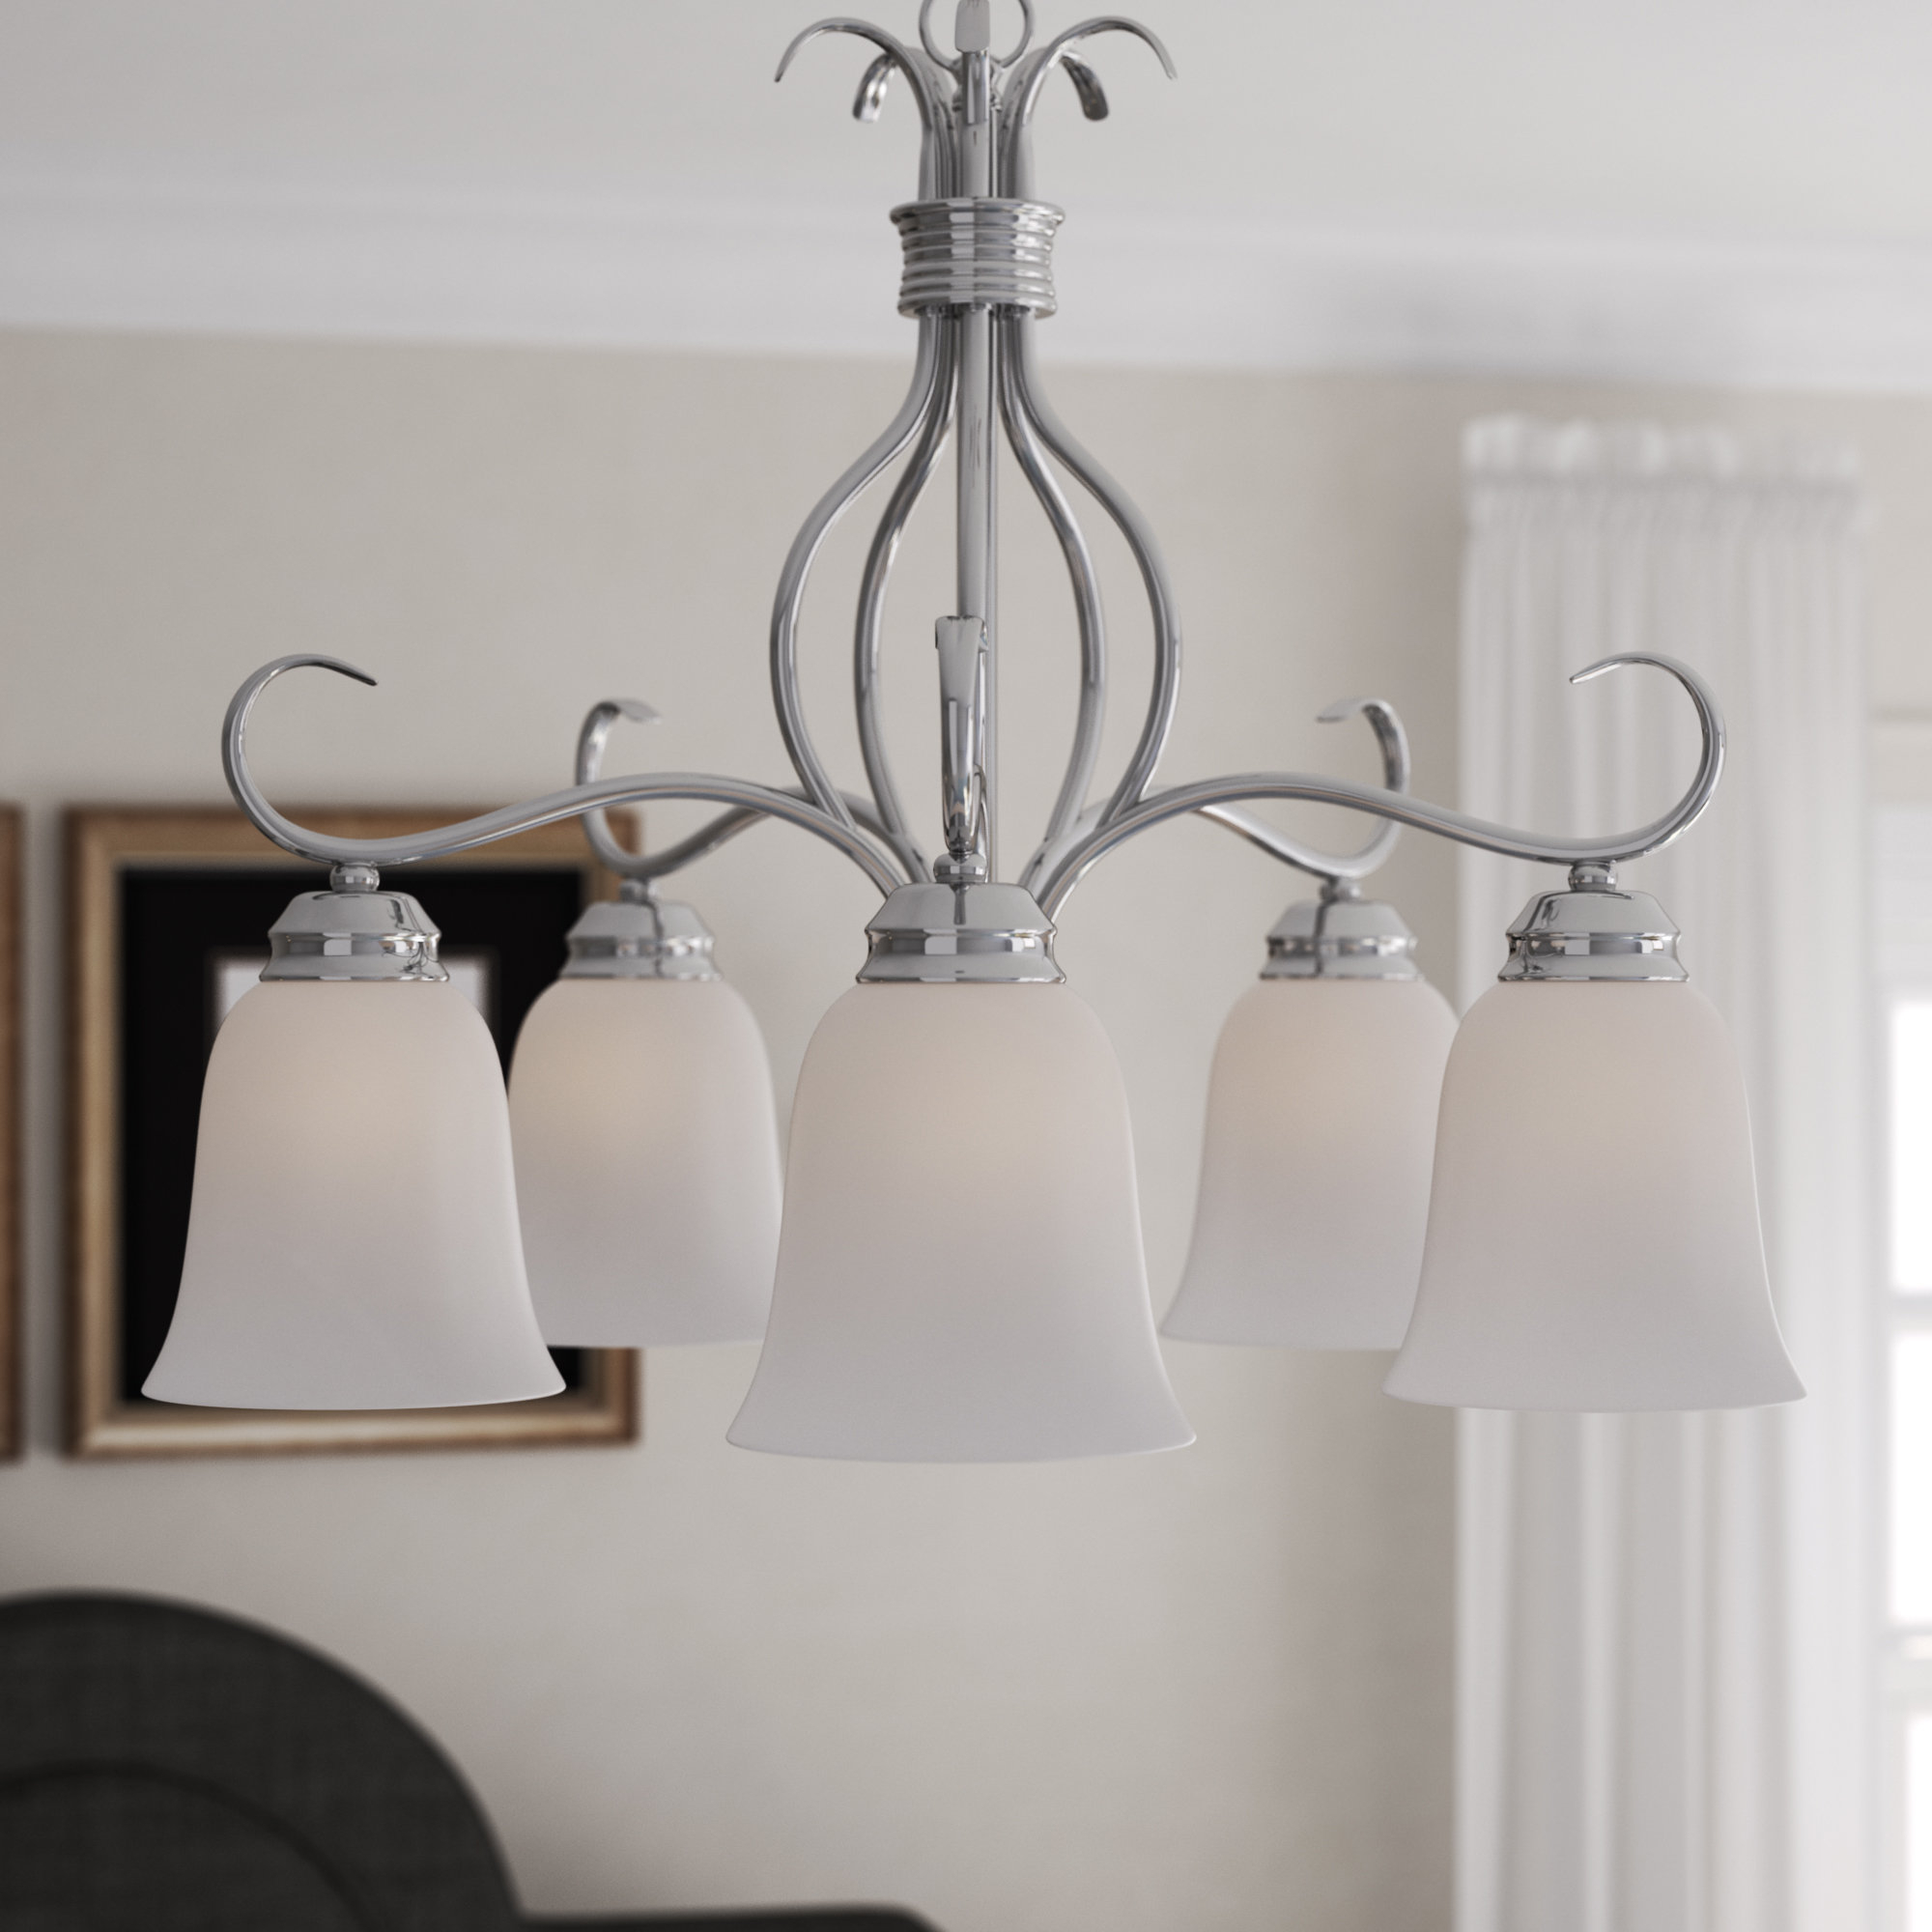 Most Recent Crofoot 5 Light Shaded Chandeliers With Regard To Wehr 5 Light Shaded Chandelier (View 15 of 20)